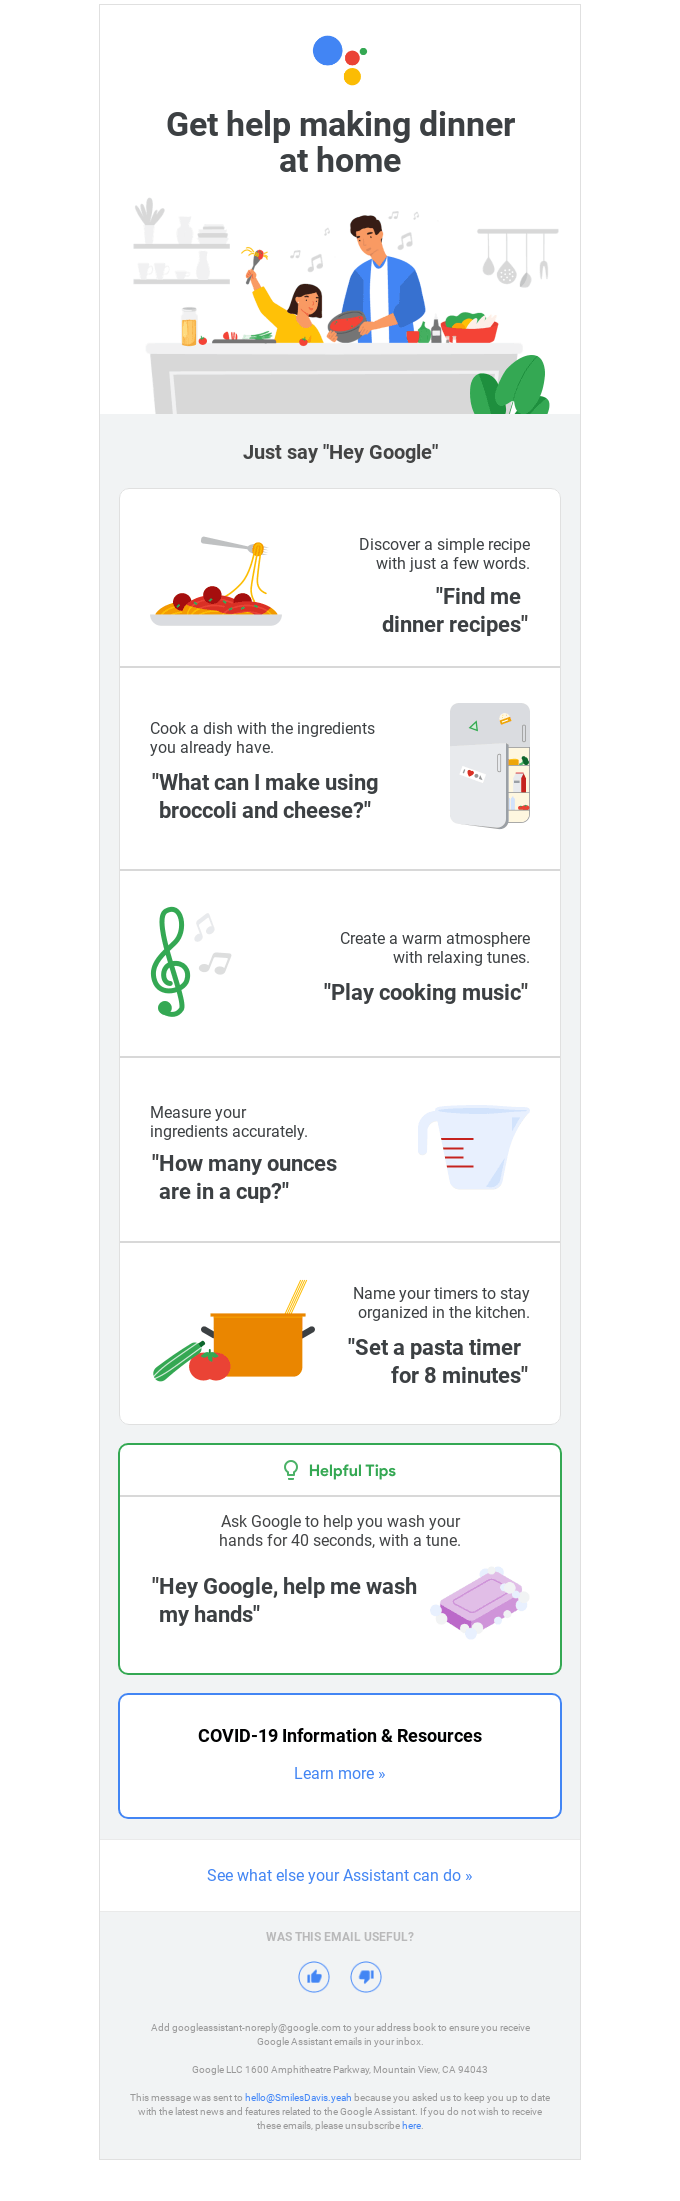 Hey Google, find me dinner recipes